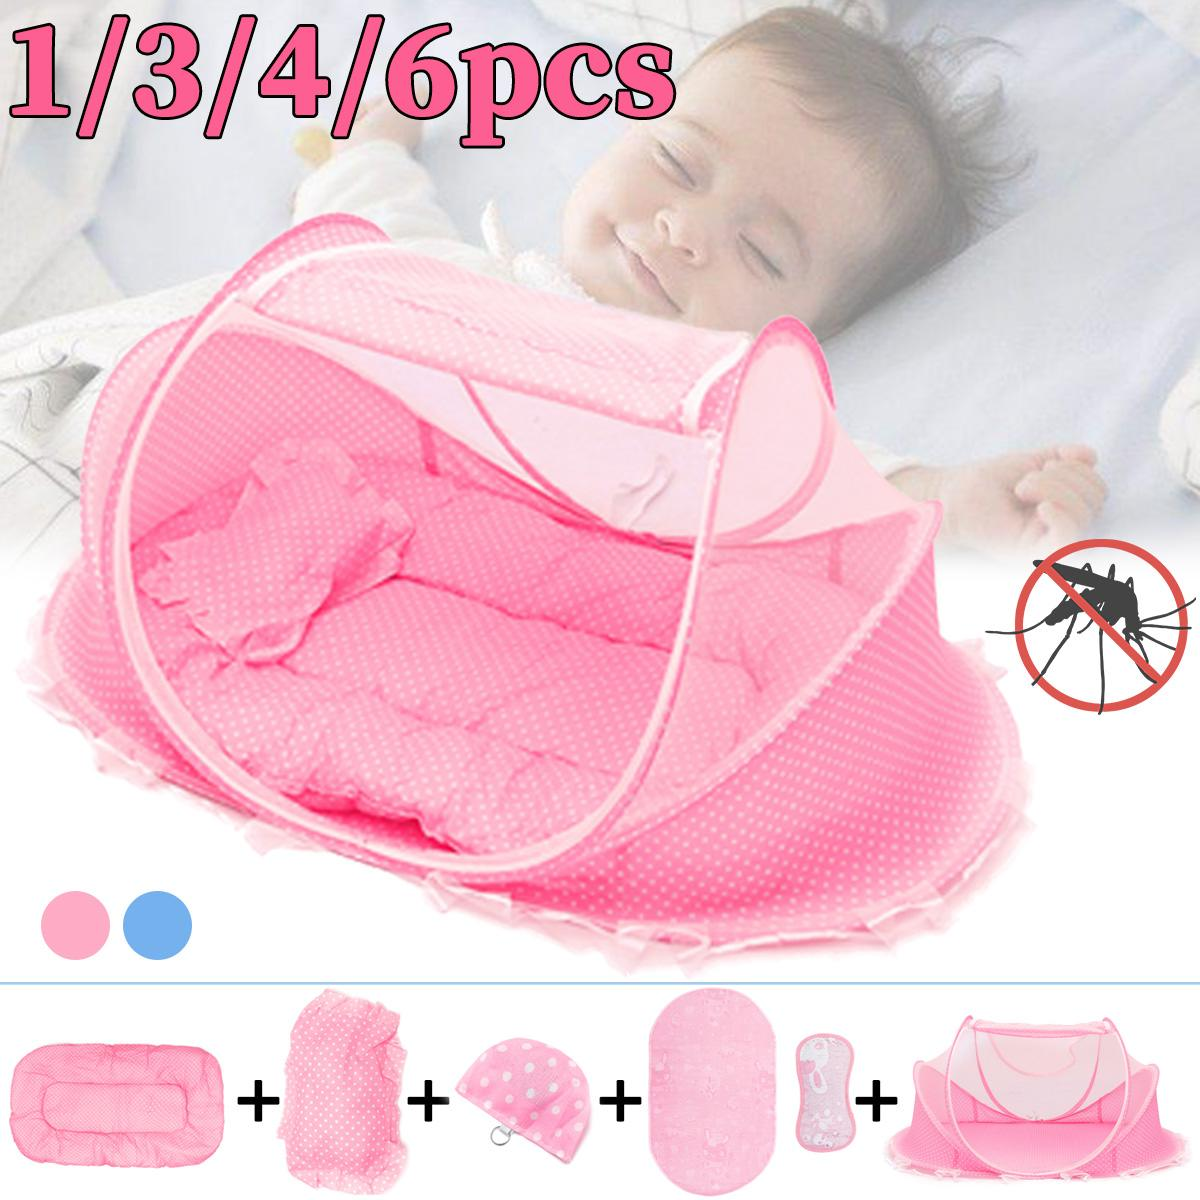 Portable Baby Mosquito Nets Bed Folding Baby Bedding Crib Netting Mattress Pillow Suit Music Bag For Children Tent Cradle Bed